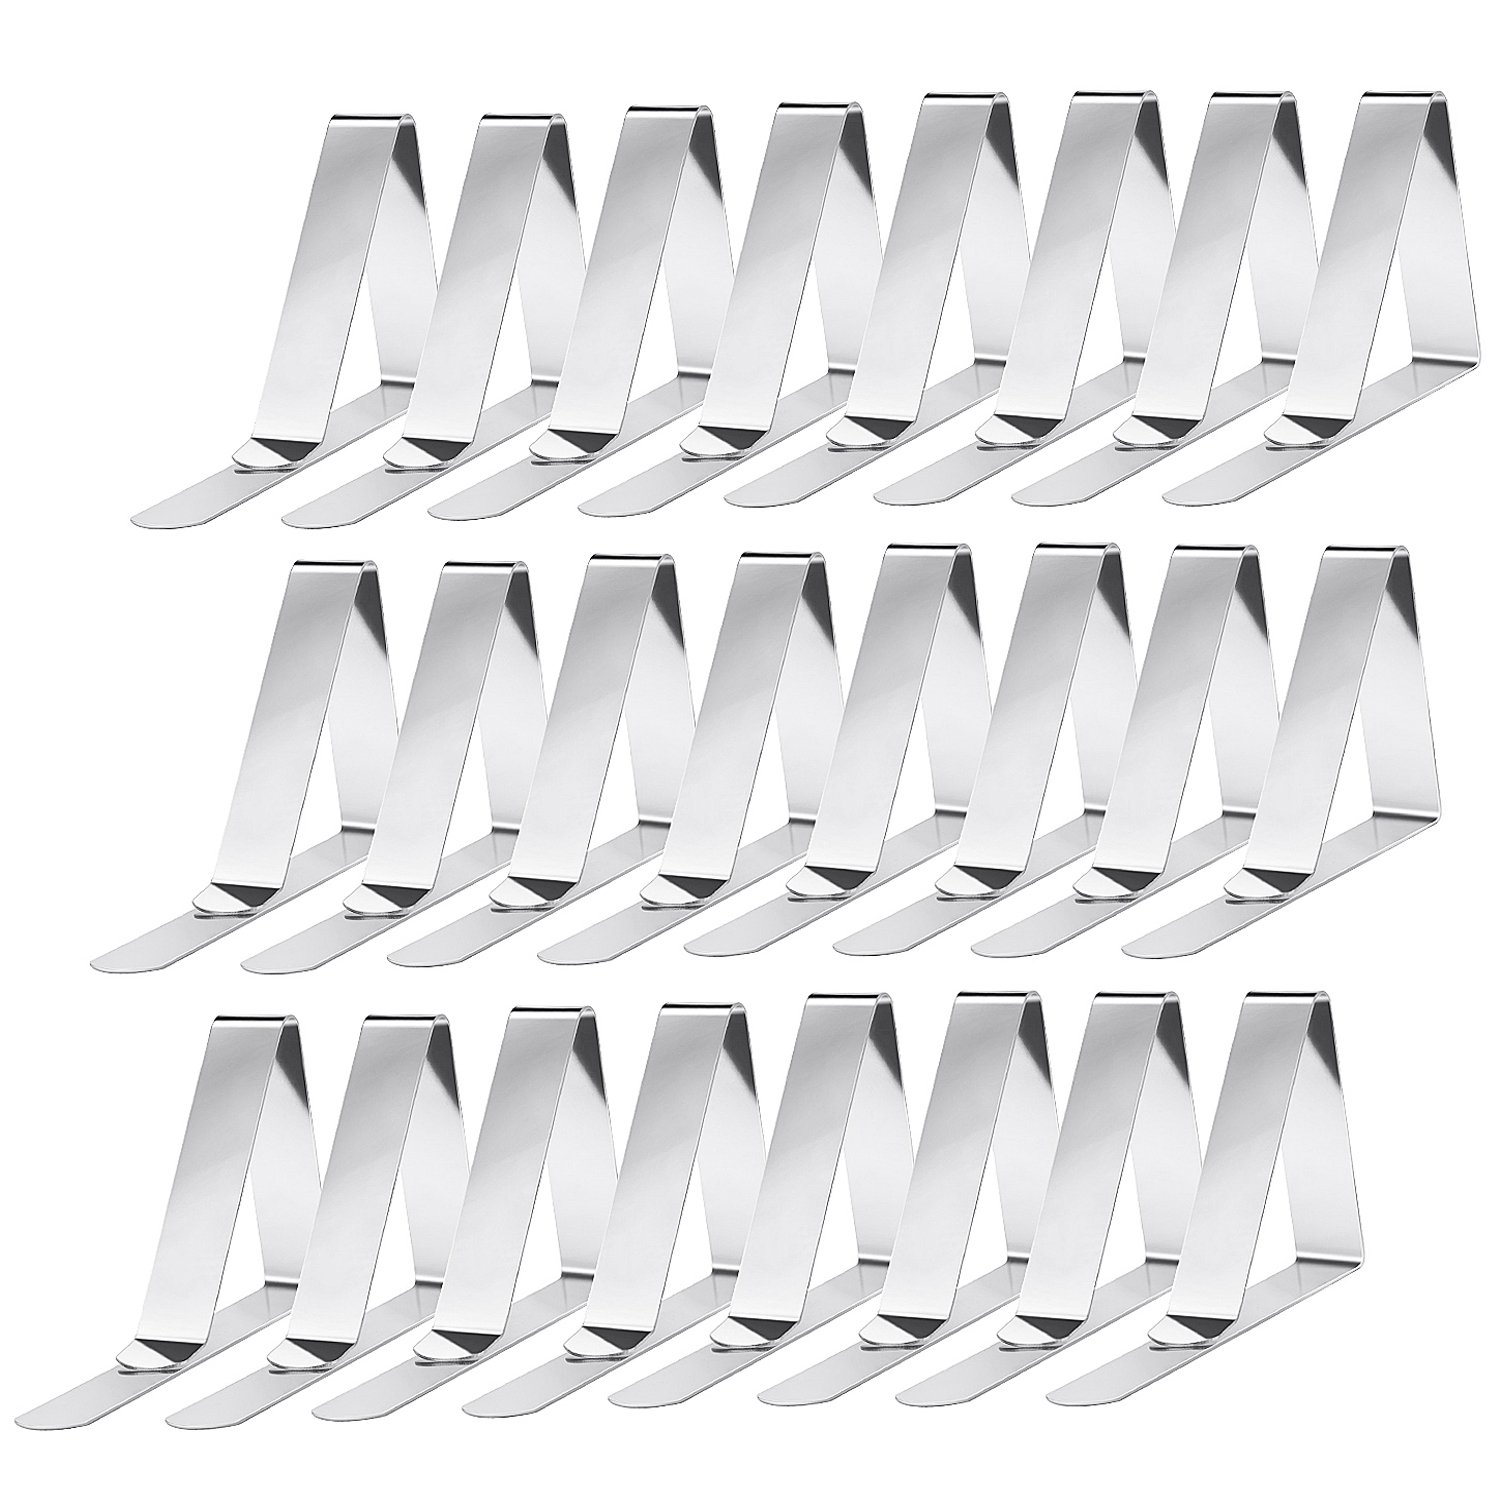 Pack of 24 Stainless Steel Tablecloth Holder ZWOOS Tablecloth Clips Clamps